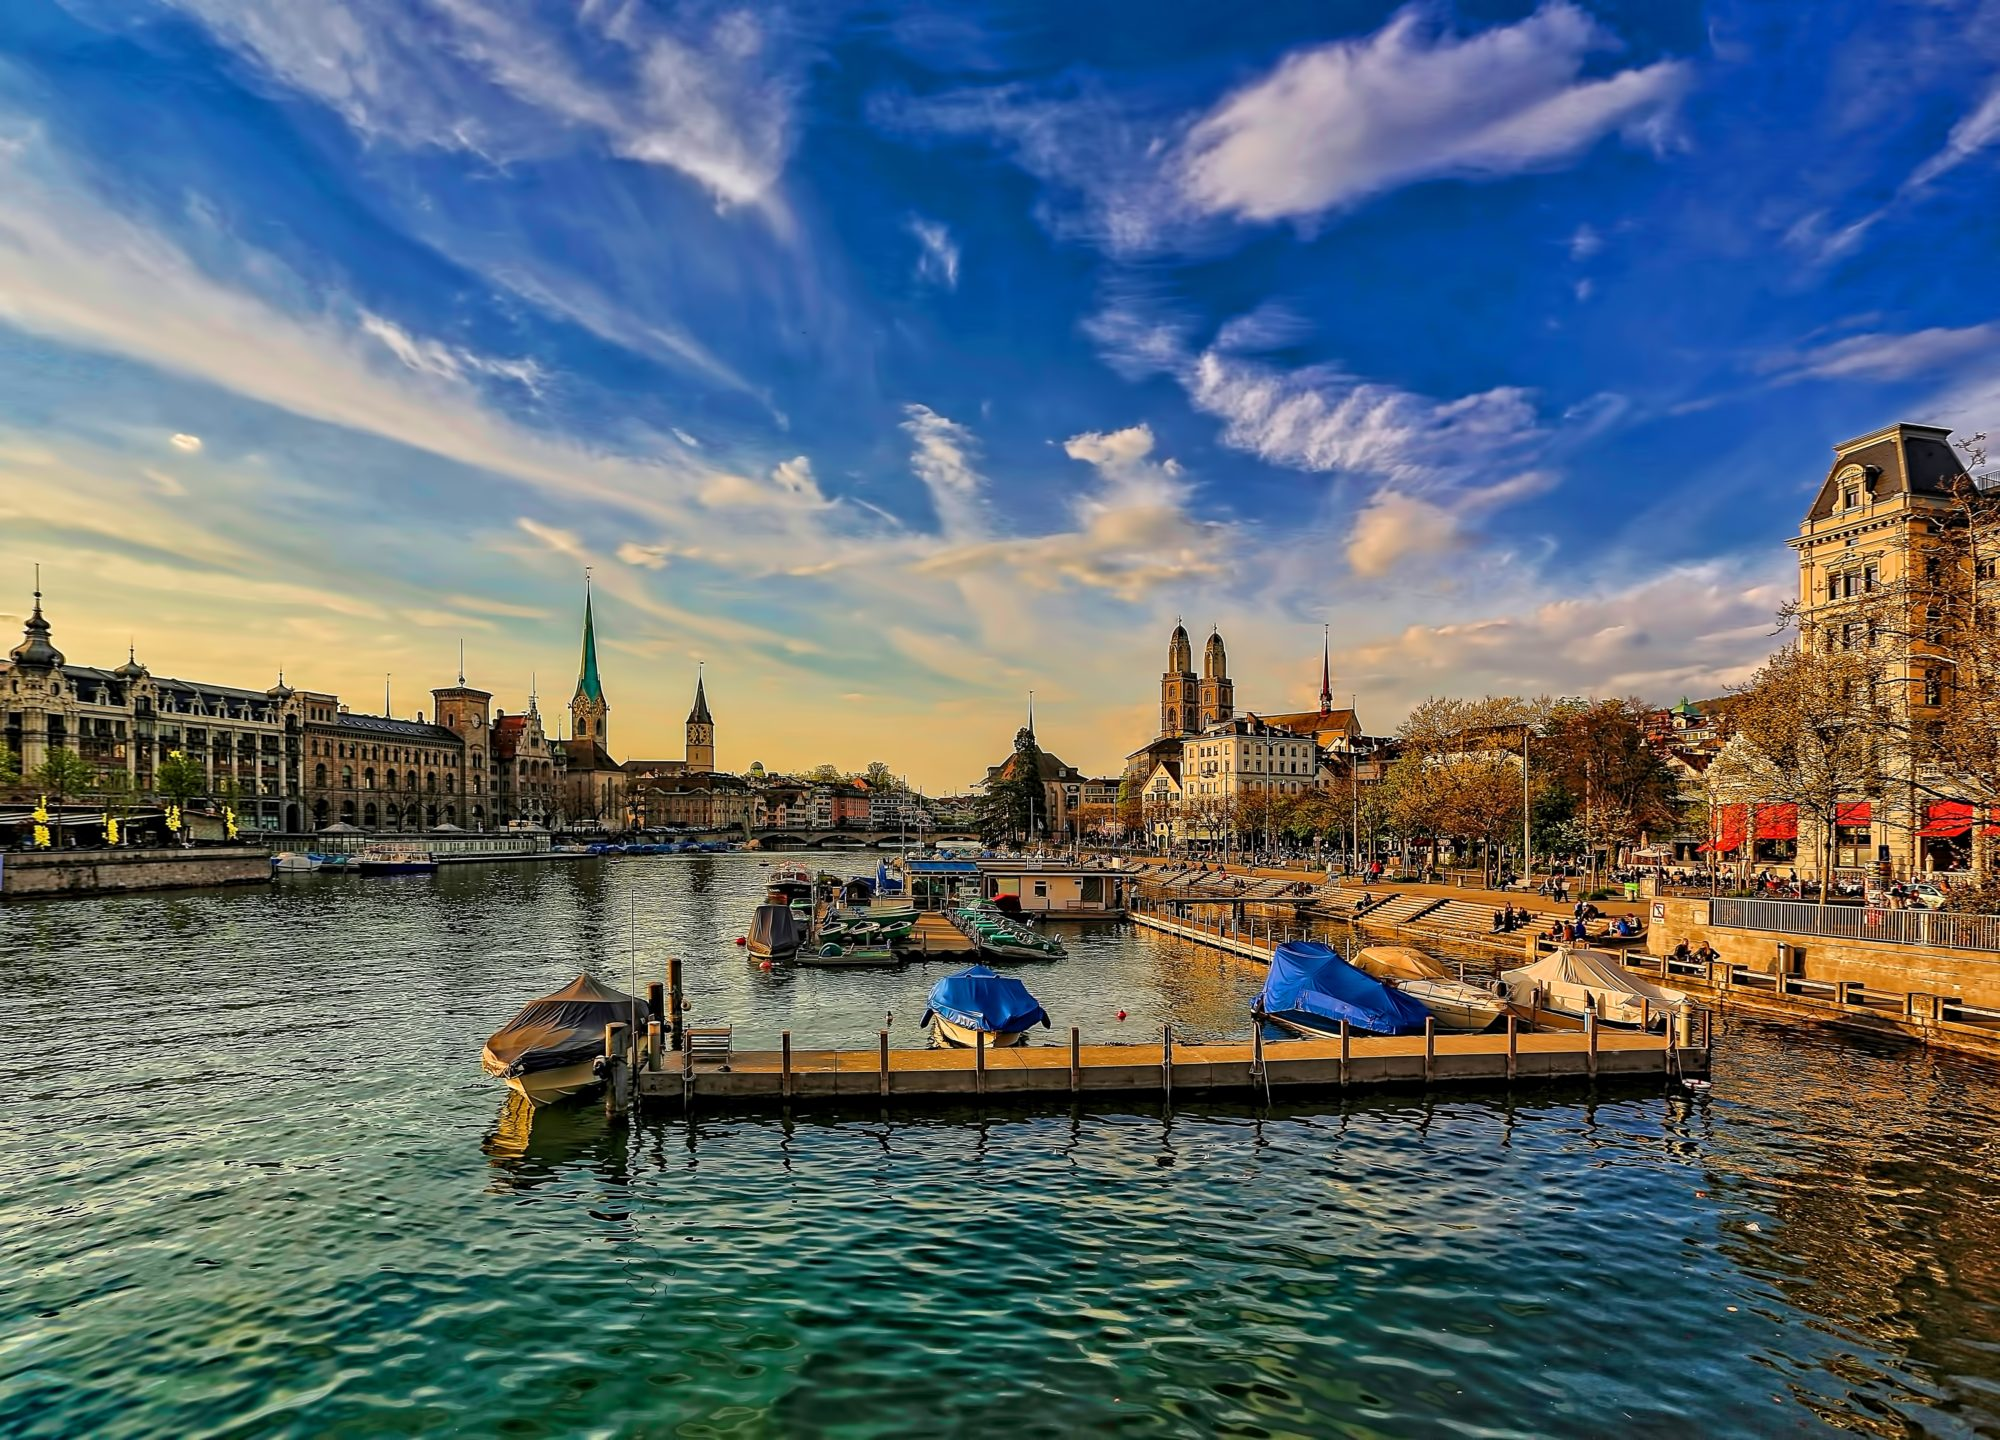 Zurich, Best Mountain Towns In Europe